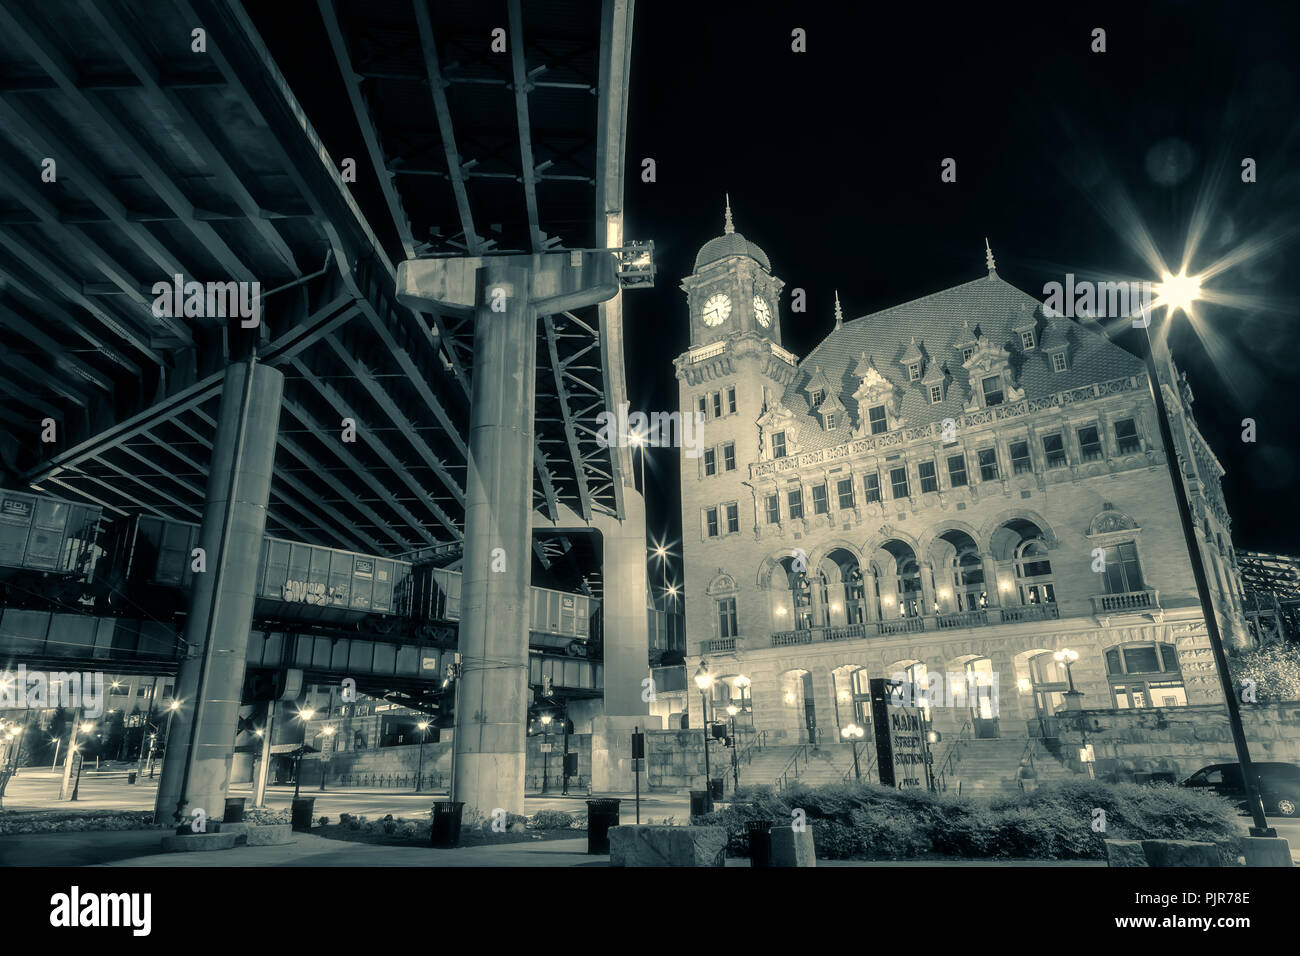 Main Station Building, with the highway bridge in Richmond, Virginia, United States. - Stock Image